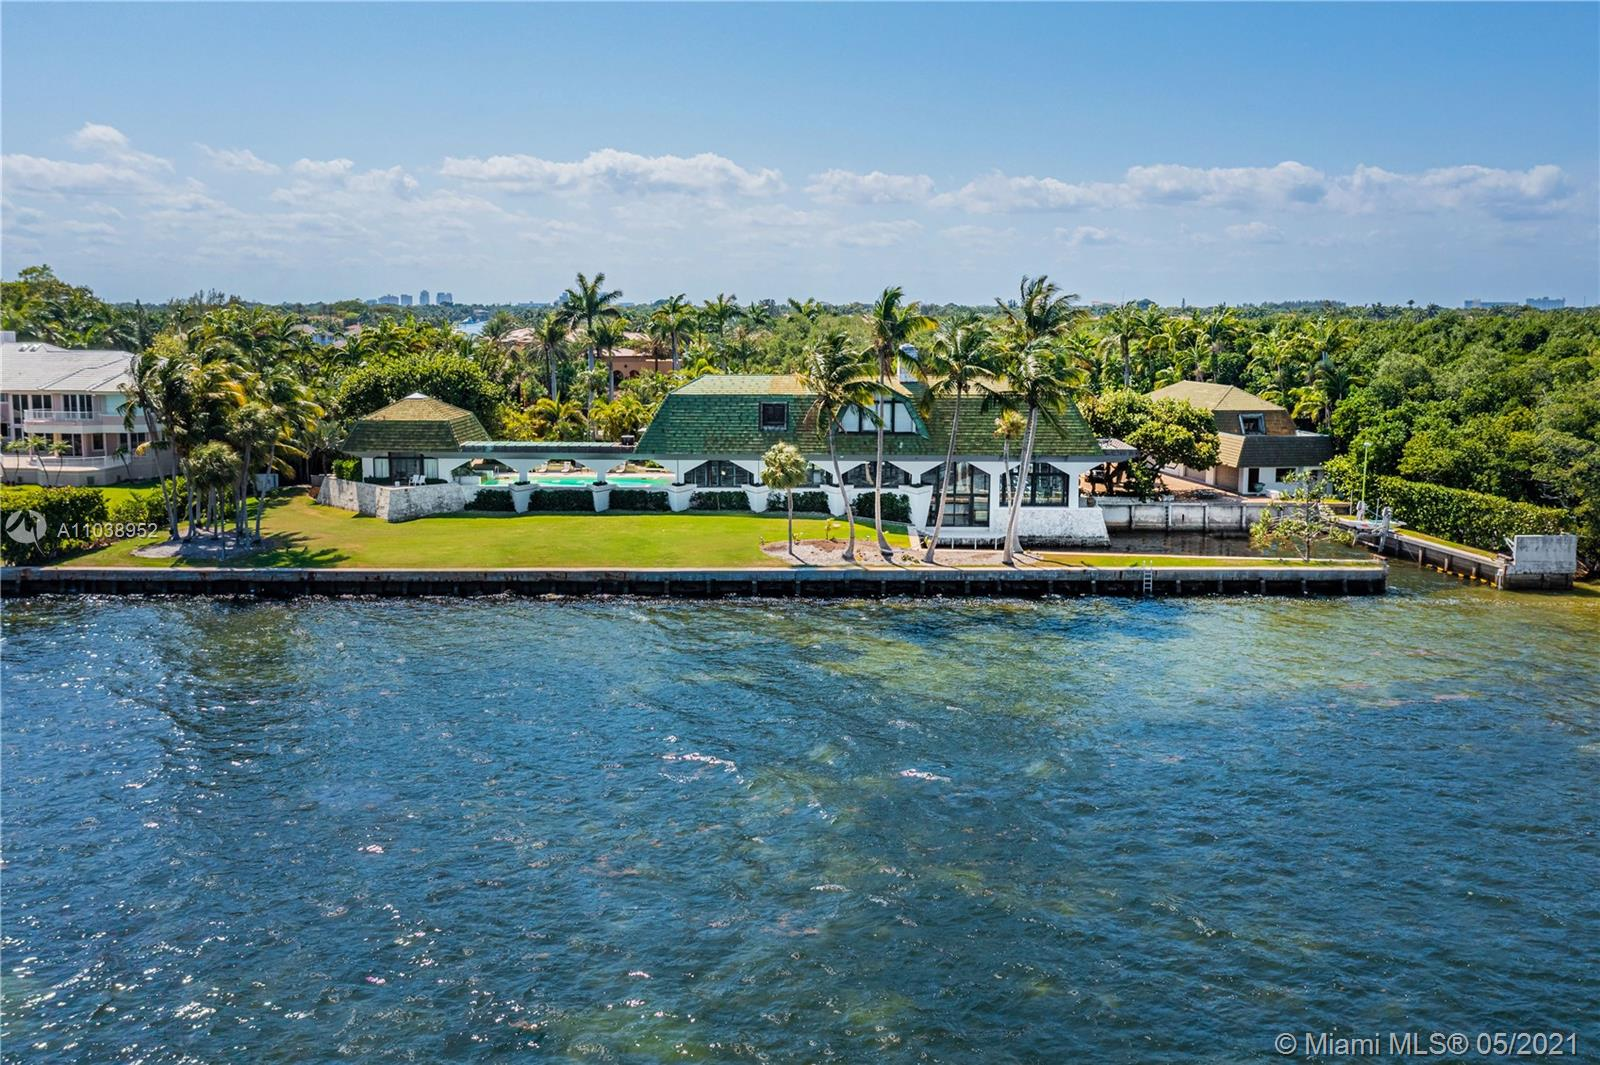 This magnificent gated 3-story bayfront estate located in exclusive Gables Estates sits directly on Biscayne Bay on an impressive 114,882 SF lot with 340+/-FT of WF, a tennis court, amazing open bay & Downtown Miami views. Features 10BR/11+2BA, exquisite marble floors, soaring ceilings, impressive living & dining room facing the open bay. Sports a chef's kitchen w/top-of-line appliances, an office, a beauty salon & family entertainment room w/pool table & a bowling alley. Sumptuous principal suite with a fireplace, bay views & beautiful principal marble bathroom w/spa tub, large marble rain shower & custom designed walk-in closet. Outdoor gardens w/fountains, private 2-story Bayfront guest house, a large pool, protected dock and access to the Atlantic Ocean complete this amazing estate.